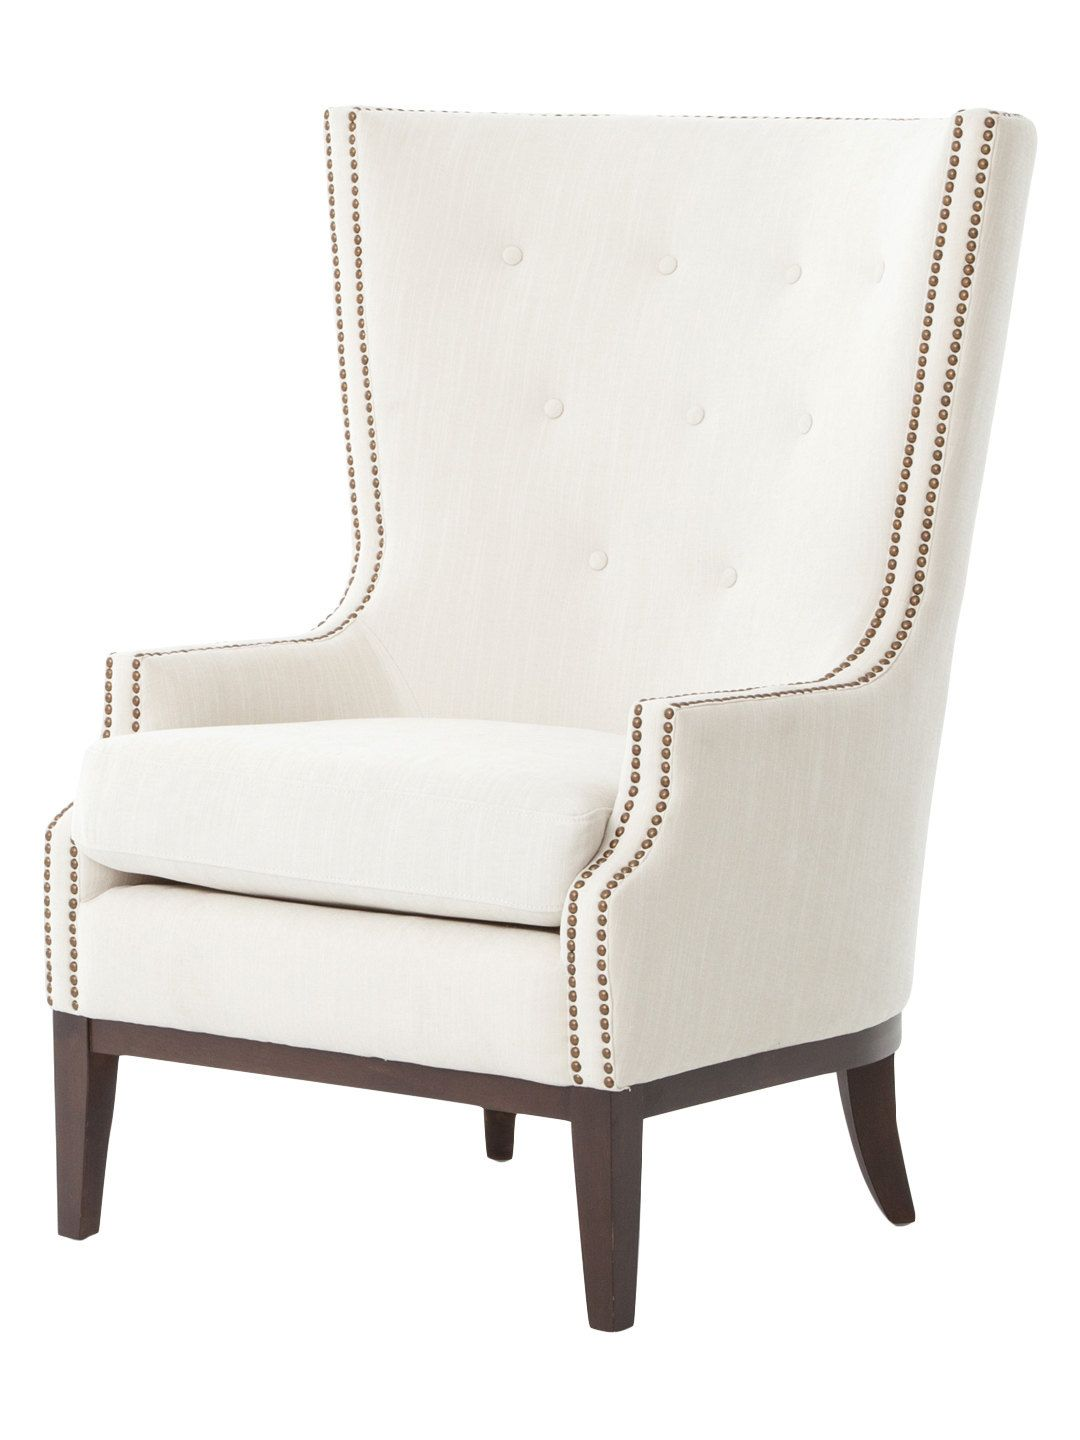 Lillian occasional chair by four hands at gilt